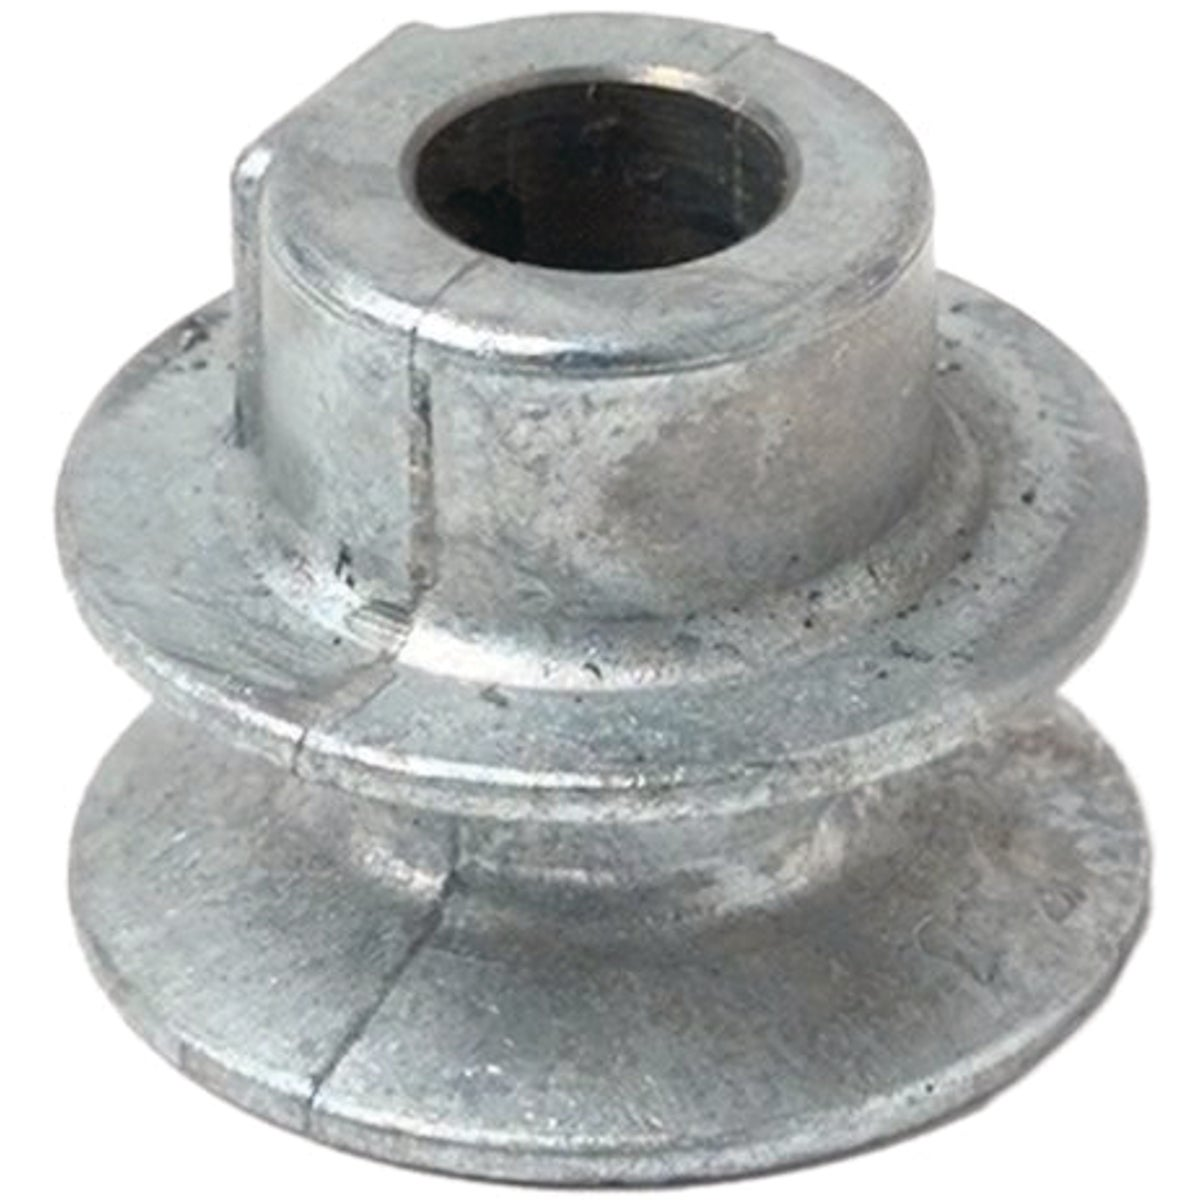 1-1/2X1/2 PULLEY - 150A5 by Chicago Die Casting